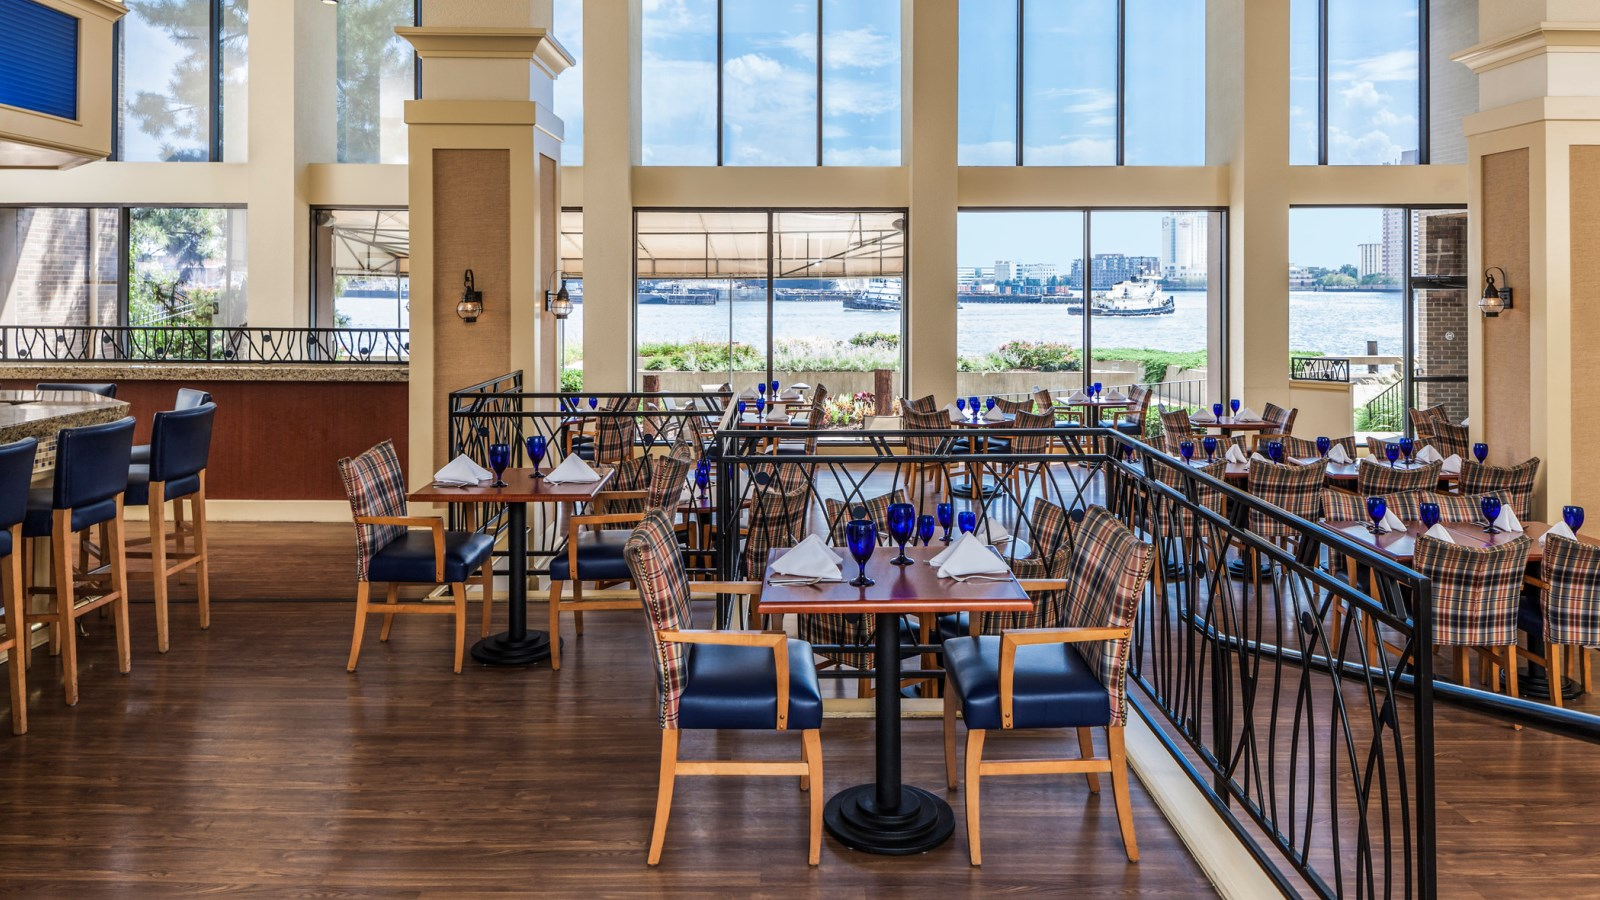 City Dock Restaurant at the Sheraton Norfolk Waterside Hotel